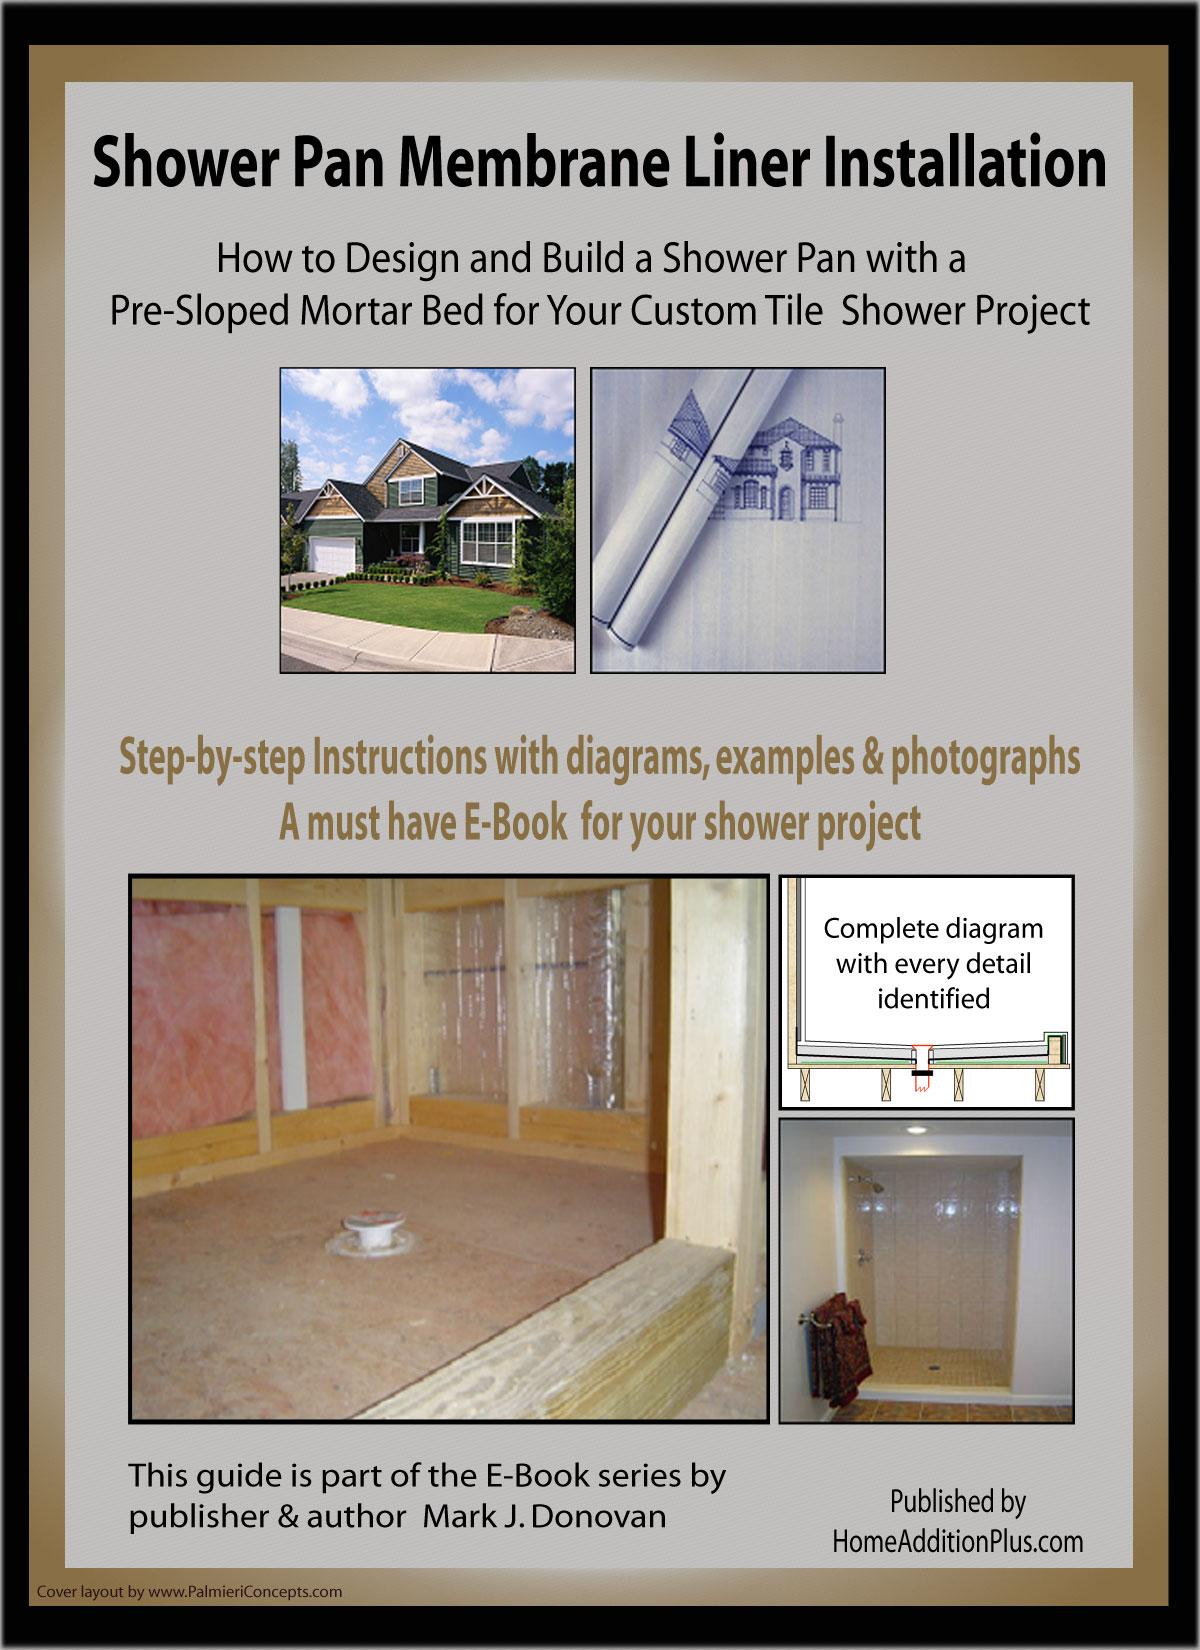 Shower Pan Membrane Liner Installation Ebook Cover